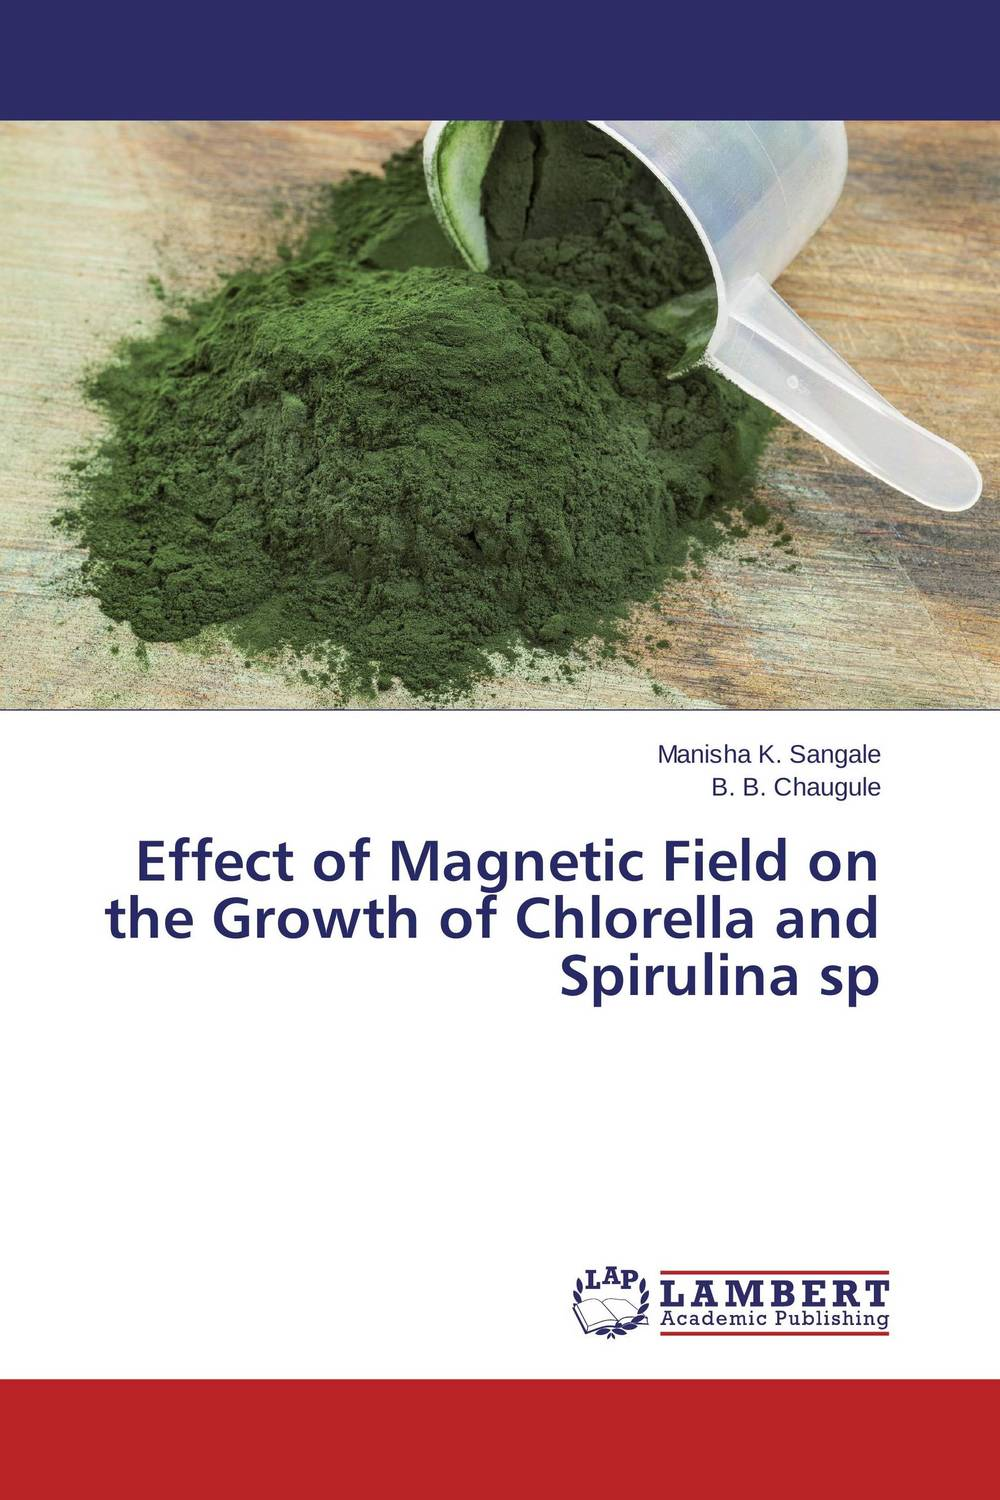 Effect of Magnetic Field on the Growth of Chlorella and Spirulina sp muhammad haris afzal use of earth s magnetic field for pedestrian navigation